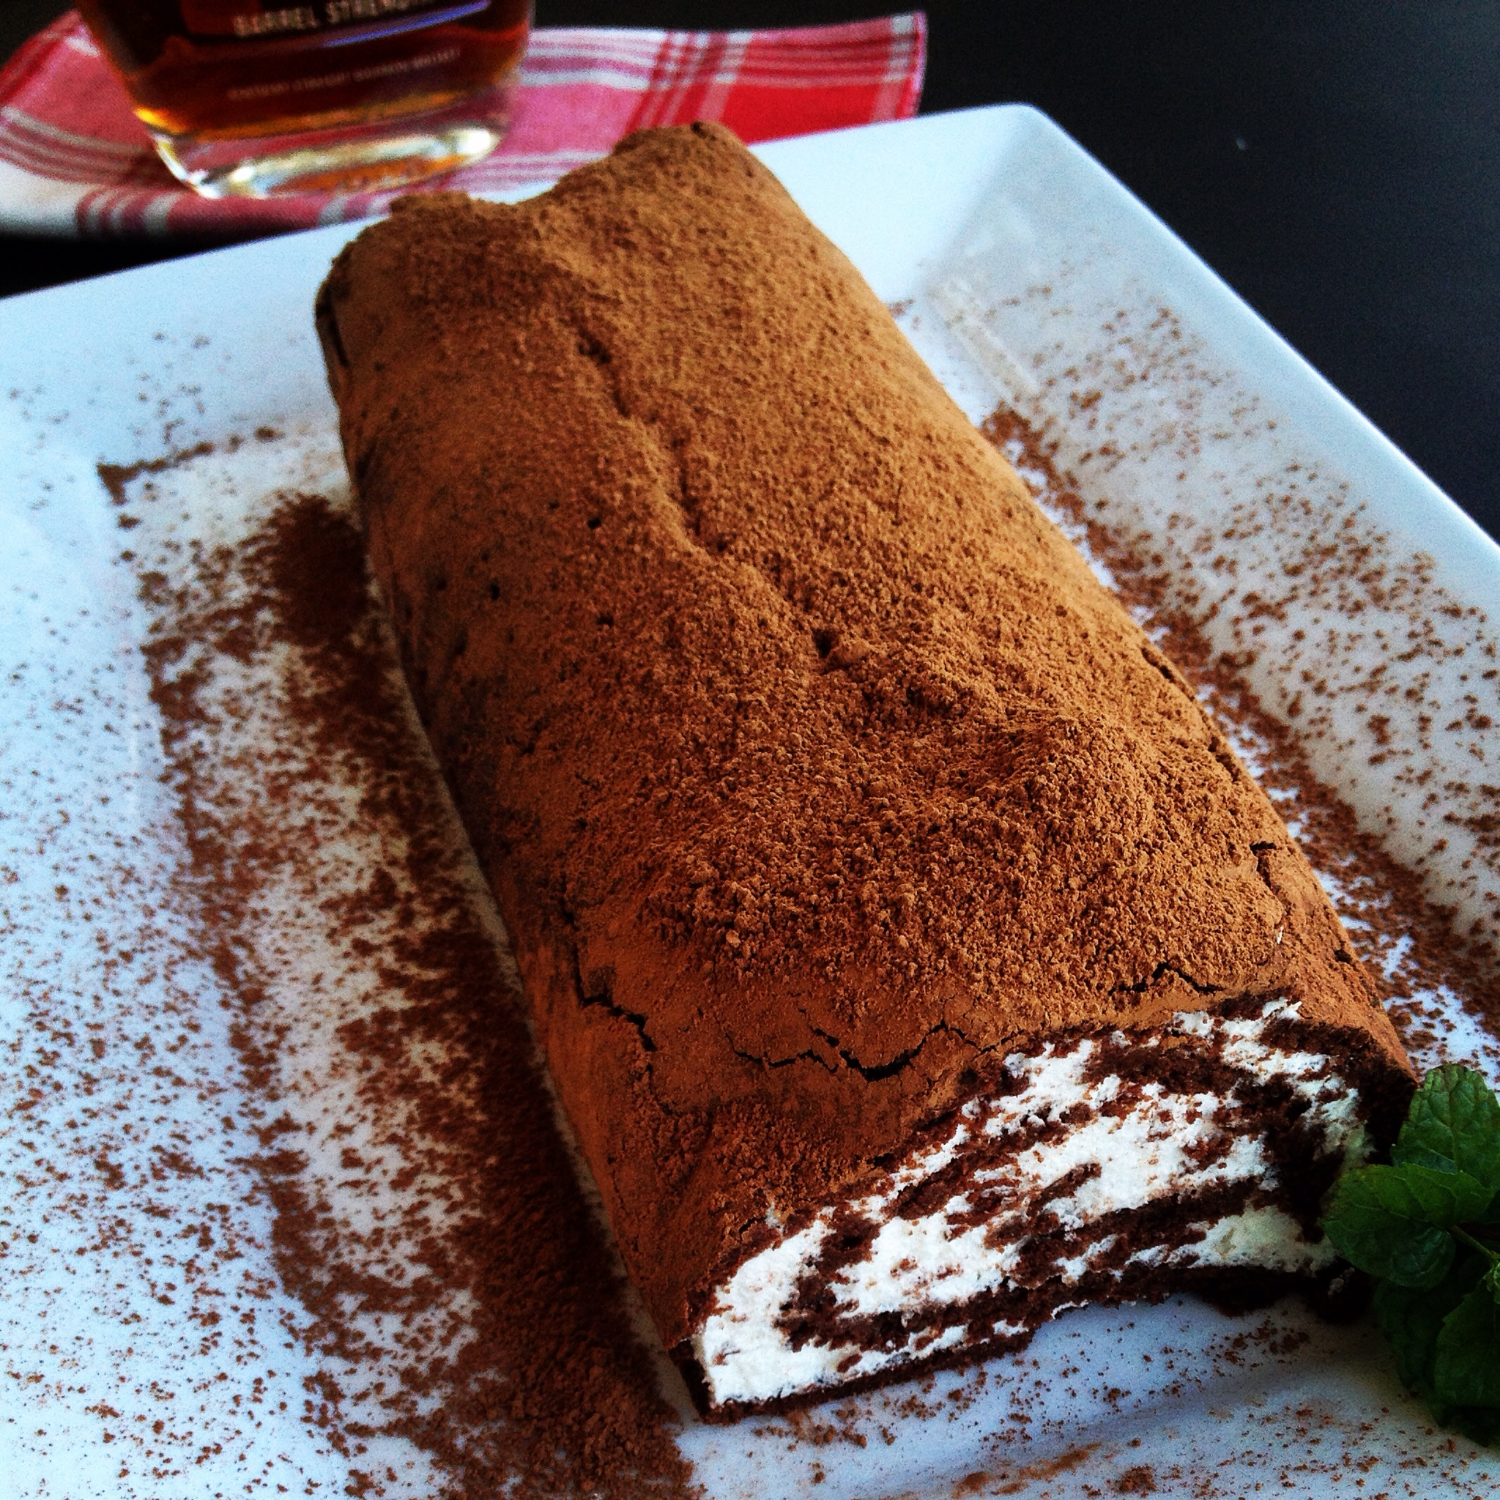 Martie's Chocolate Roulage (roulade) Recipe